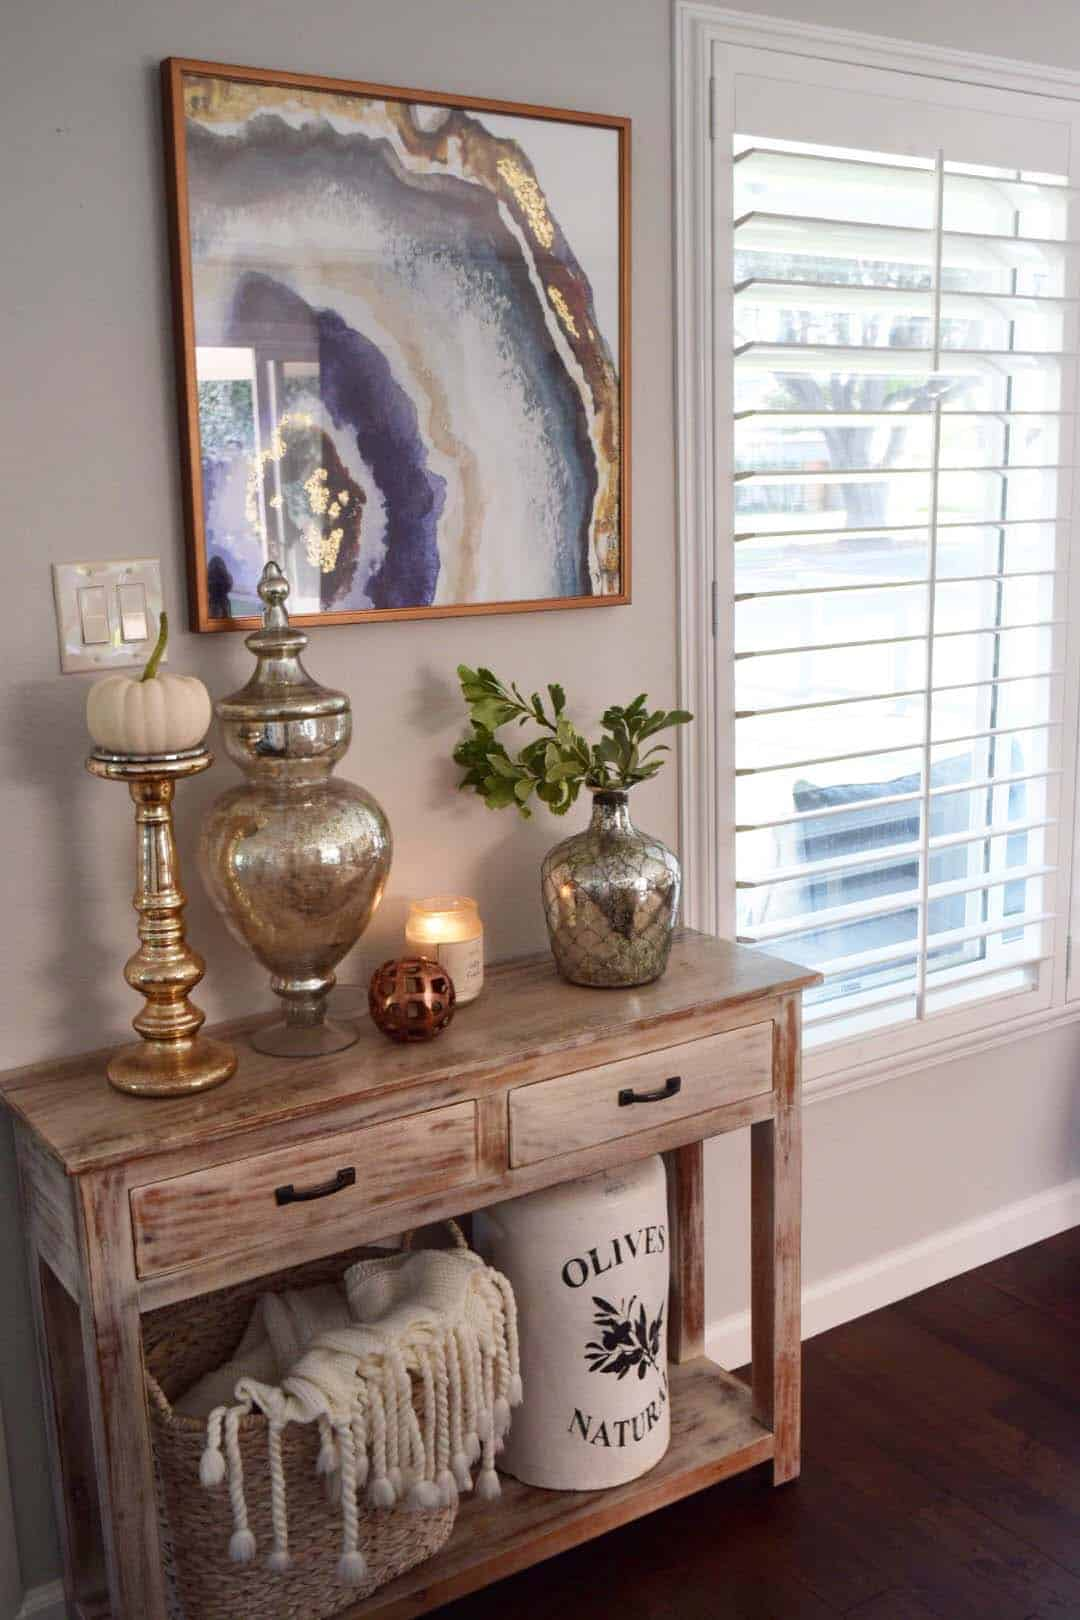 Fall-Inspired Entryway Decorating Ideas-11-1 Kindesign